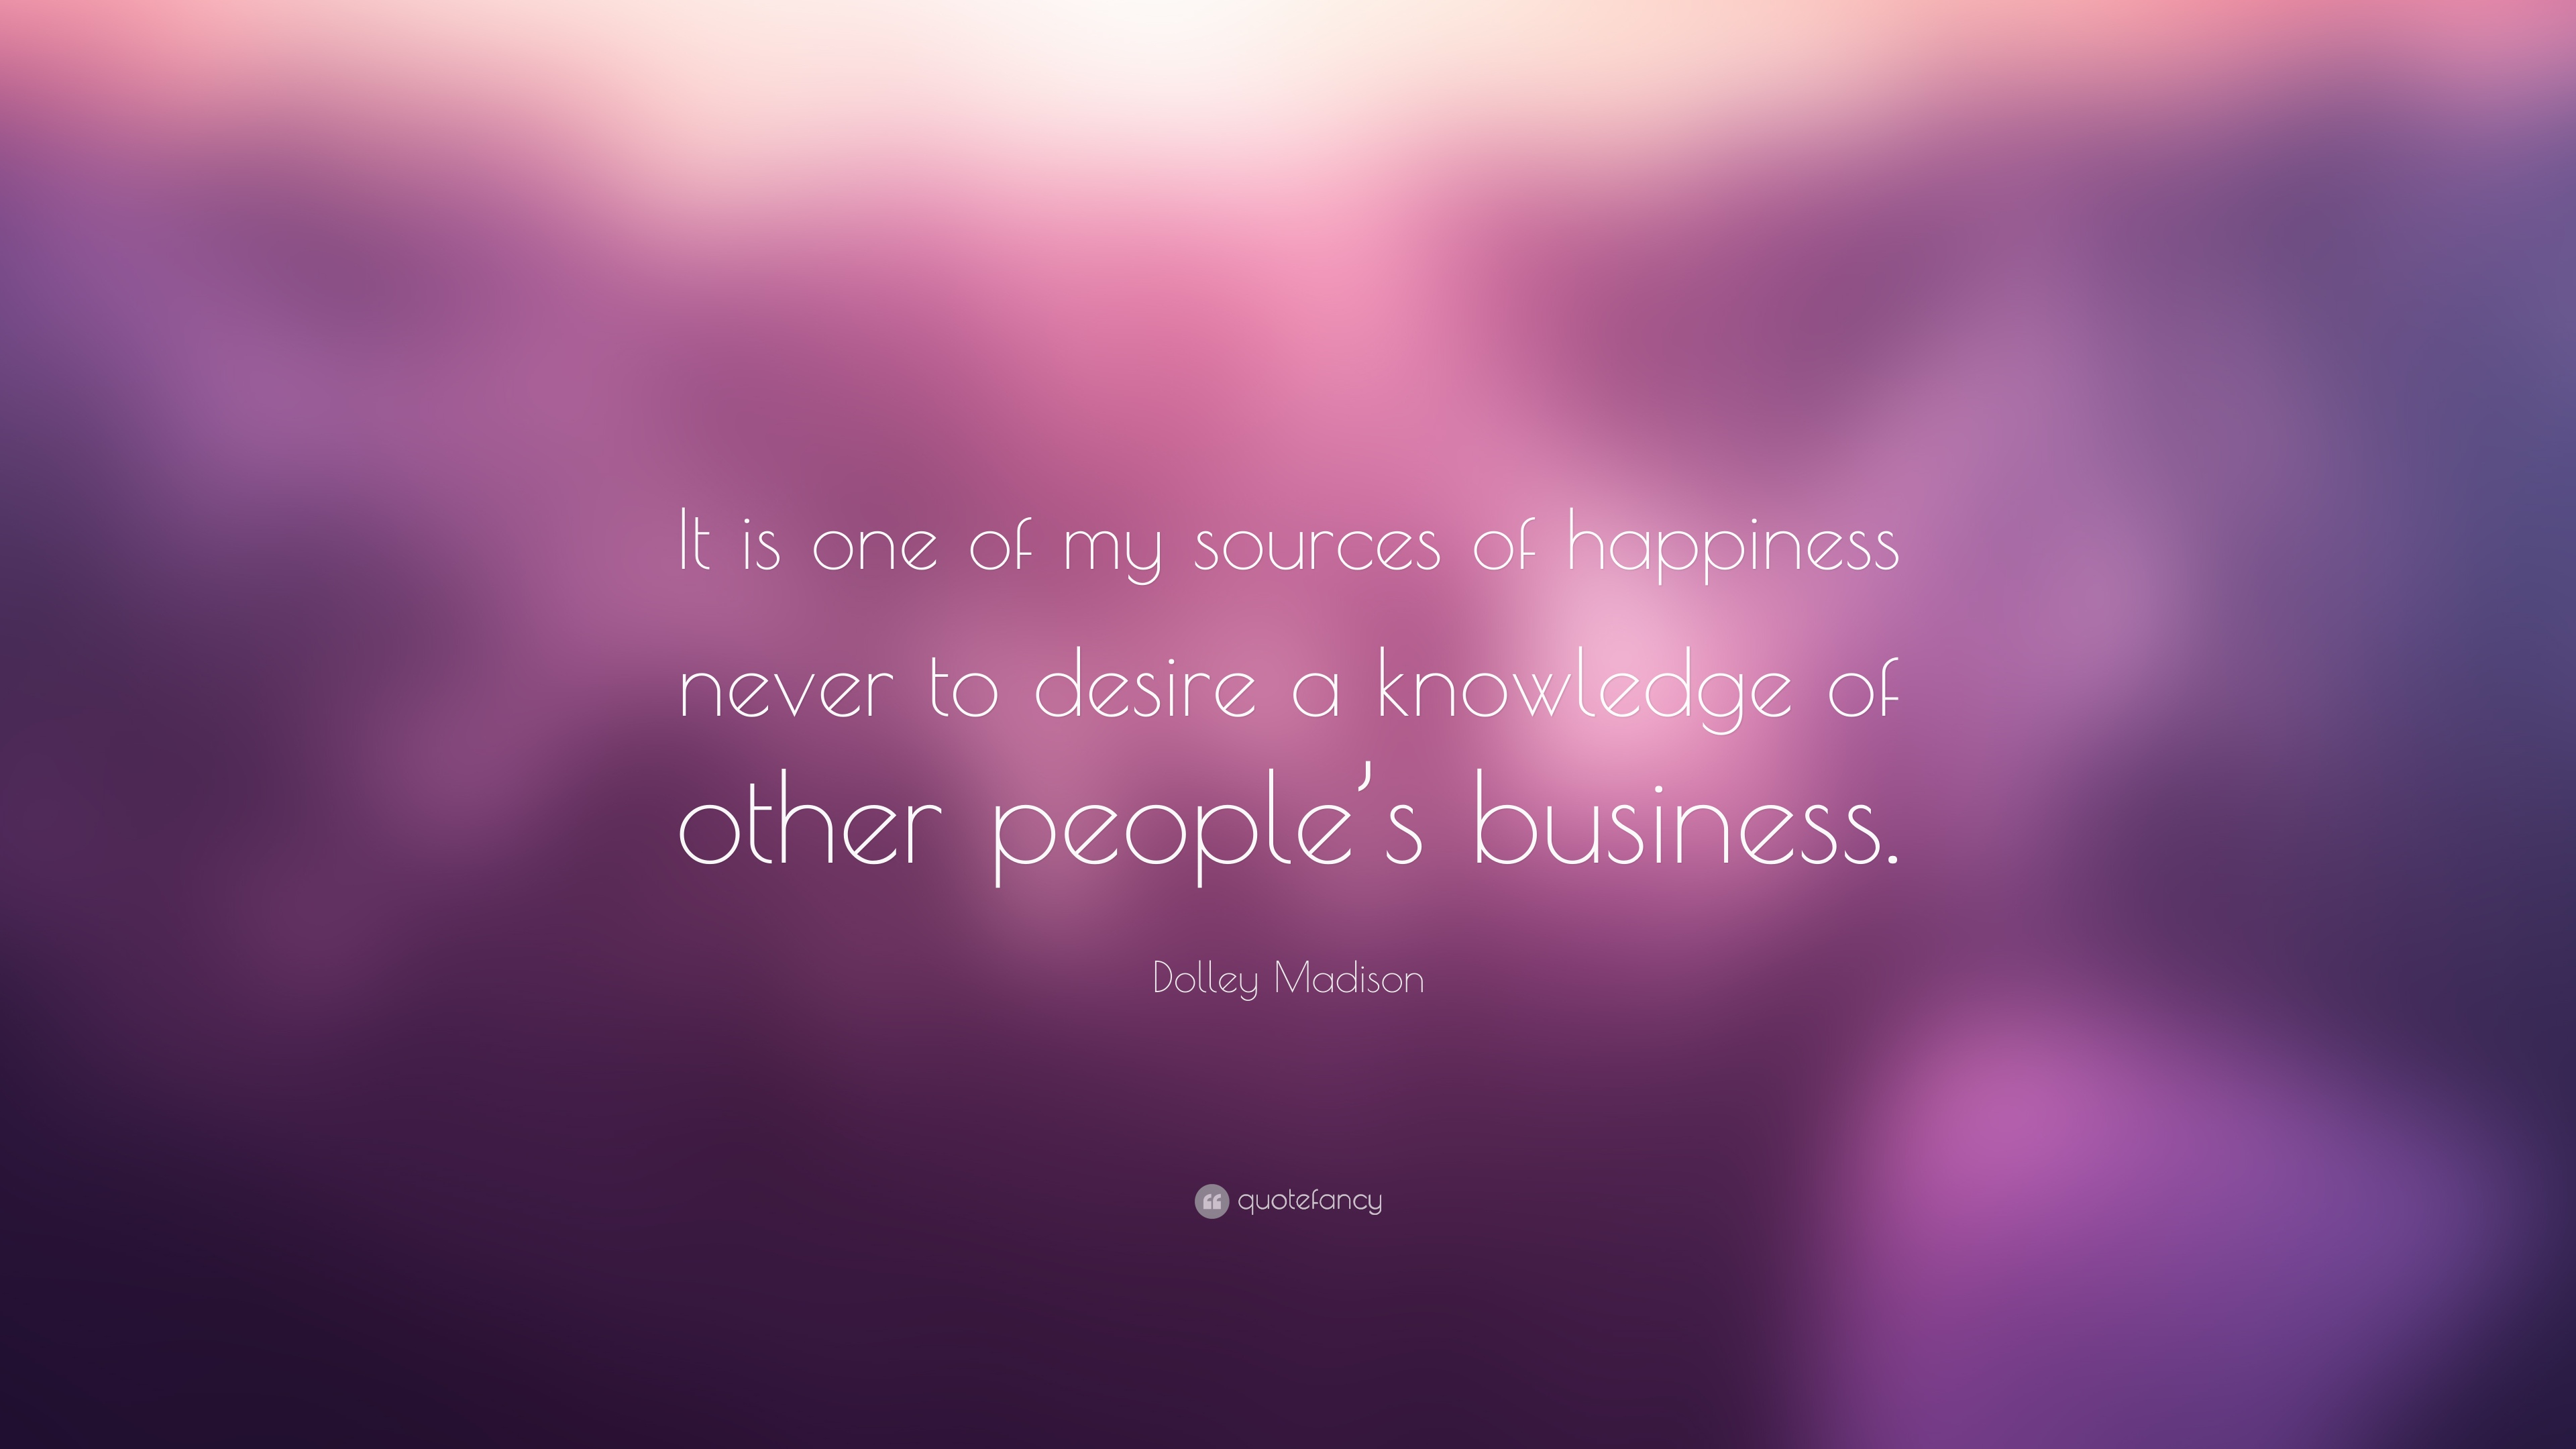 Dolley Madison Quotes   Dolley Madison Quote It Is One Of My Sources Of Happiness Never To